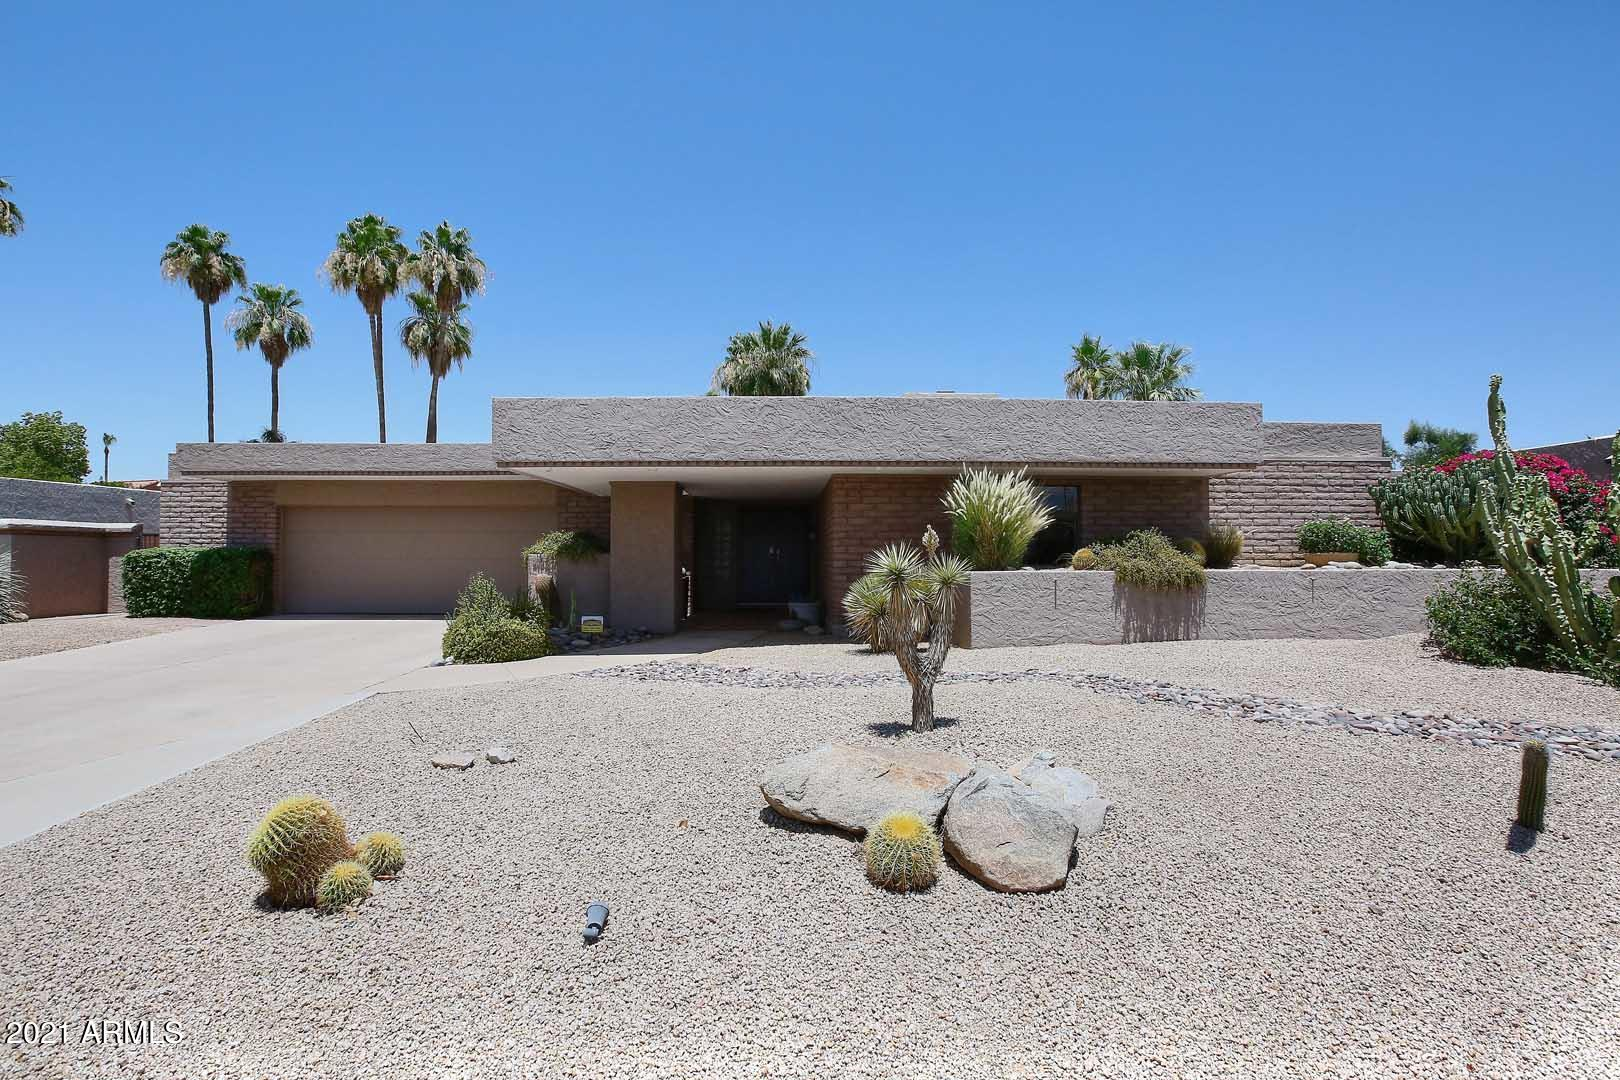 8102 E DEL TIMBRE Drive, Scottsdale, AZ 85258, 3 Bedrooms Bedrooms, ,Residential Lease,For Rent,8102 E DEL TIMBRE Drive,6257023